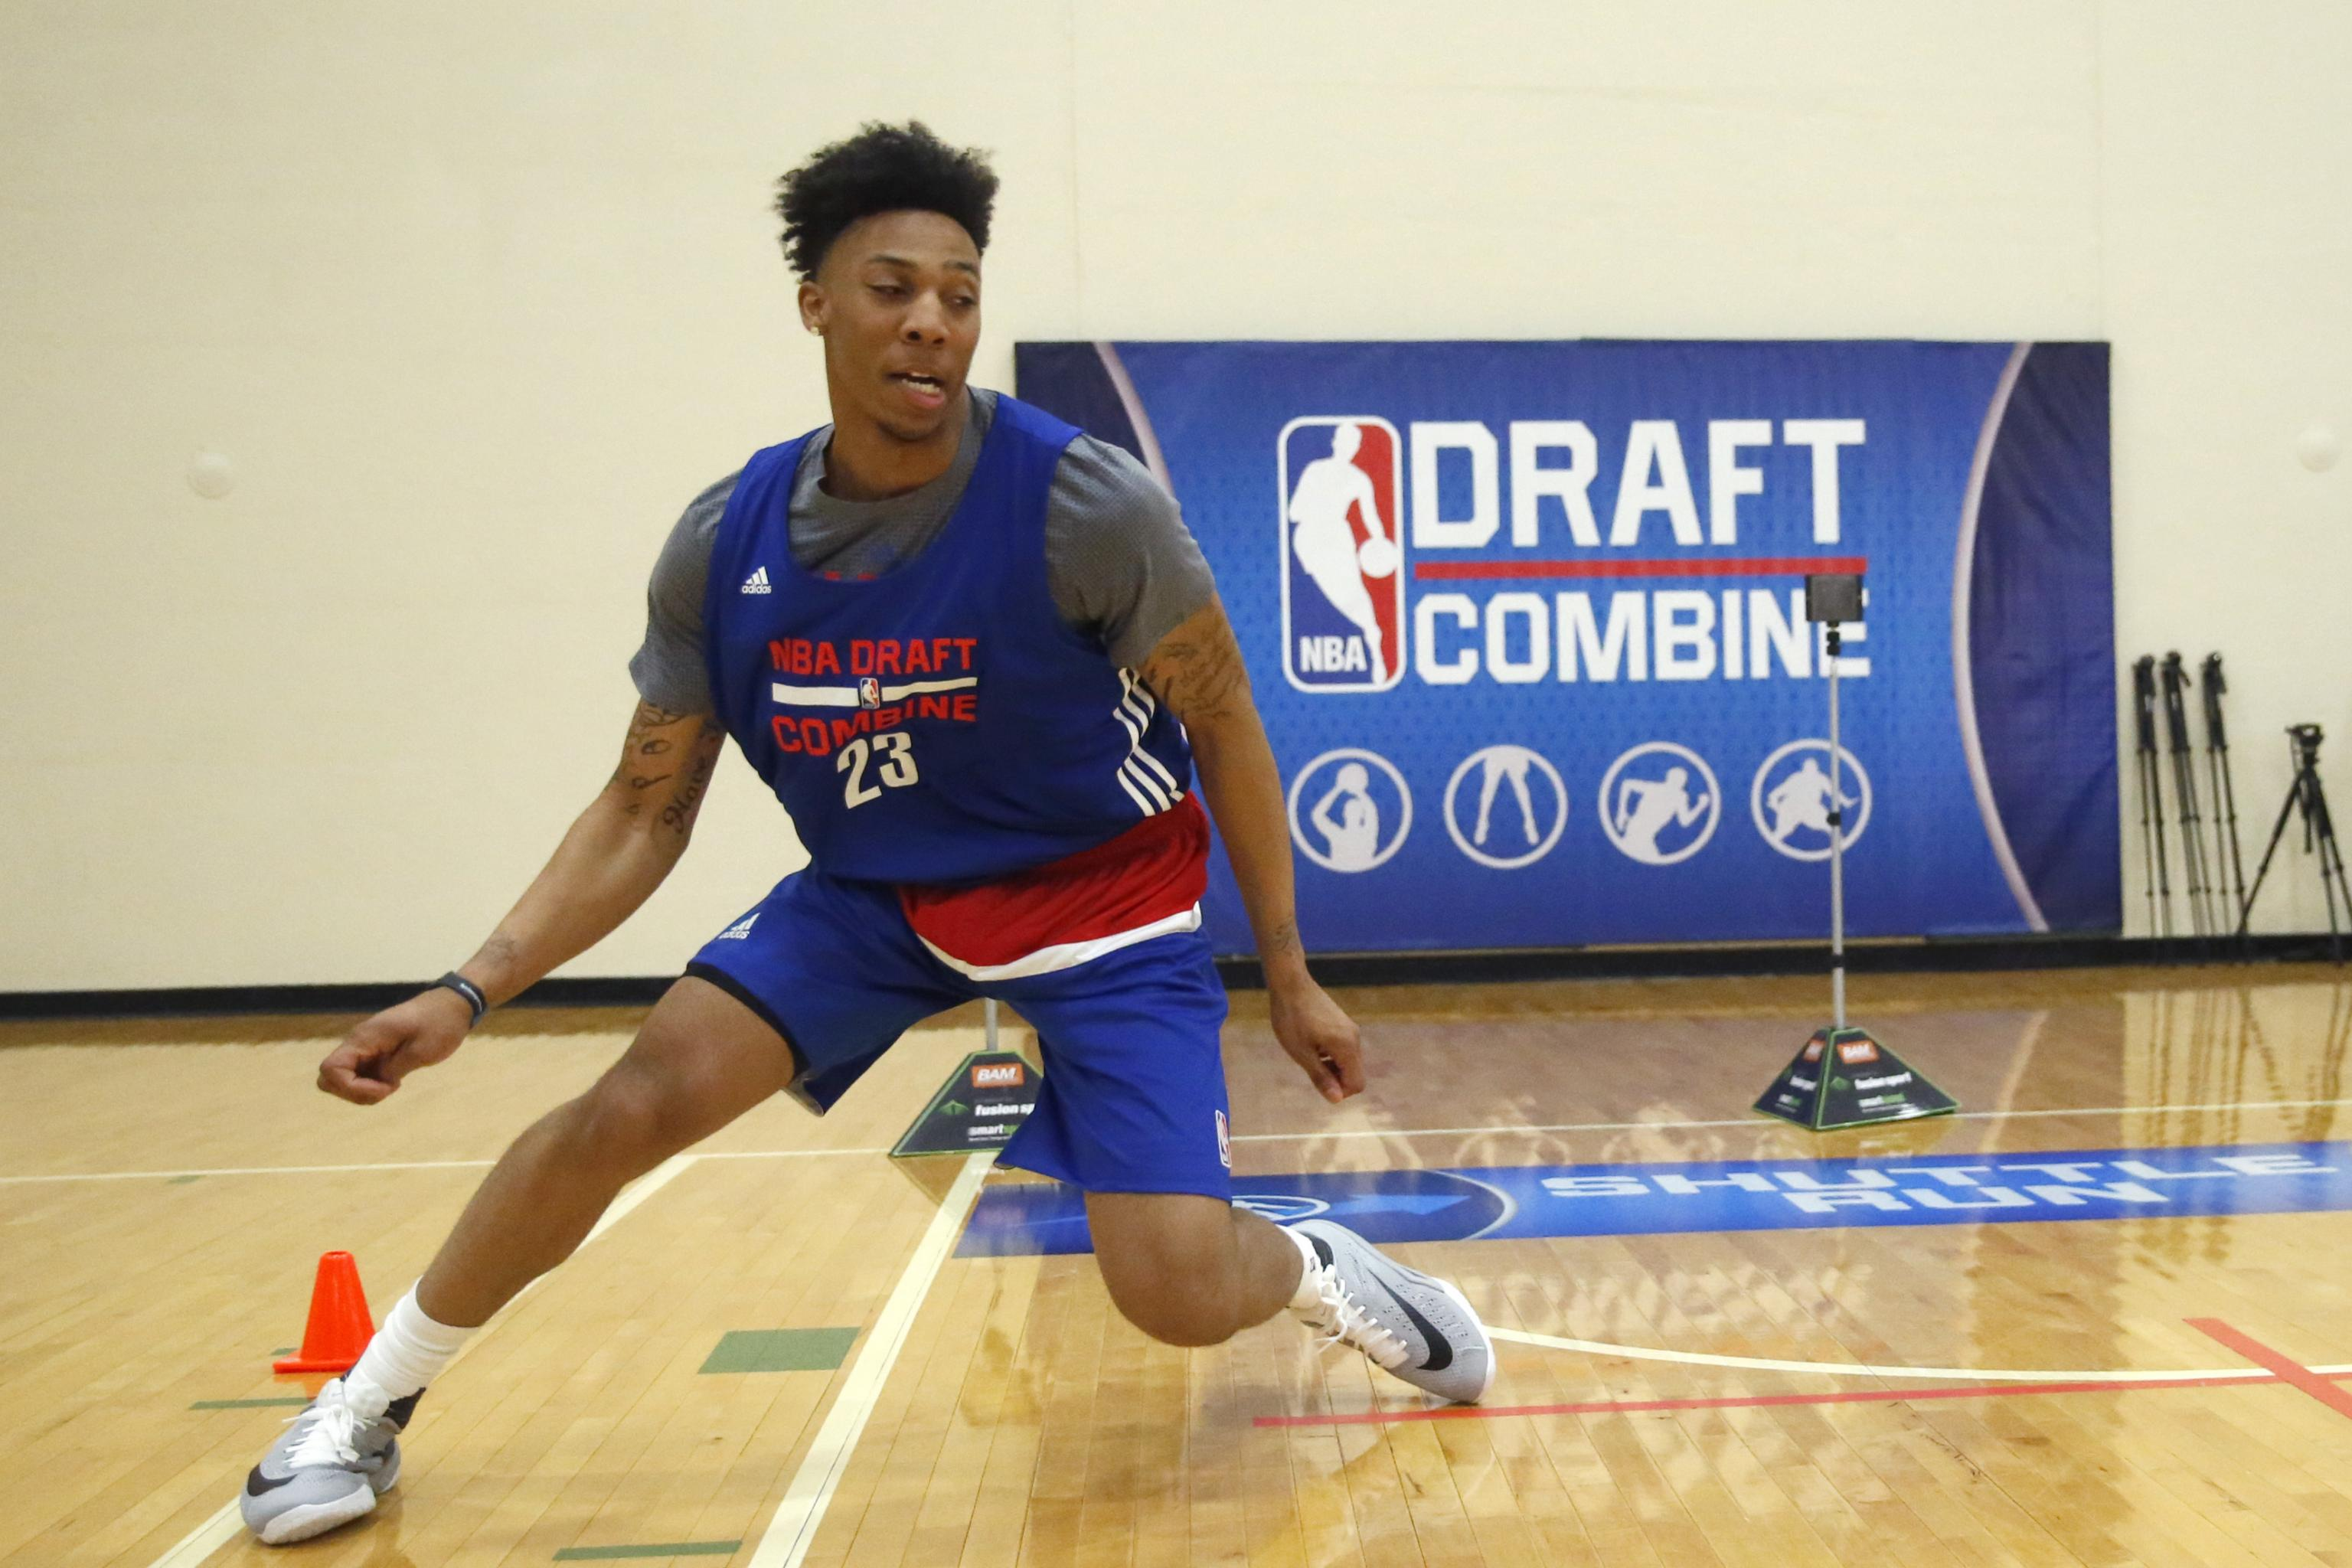 NBA Draft Combine 2016: Takeaways from Measurements, Workouts and More | Bleacher Report | Latest News, Videos and Highlights